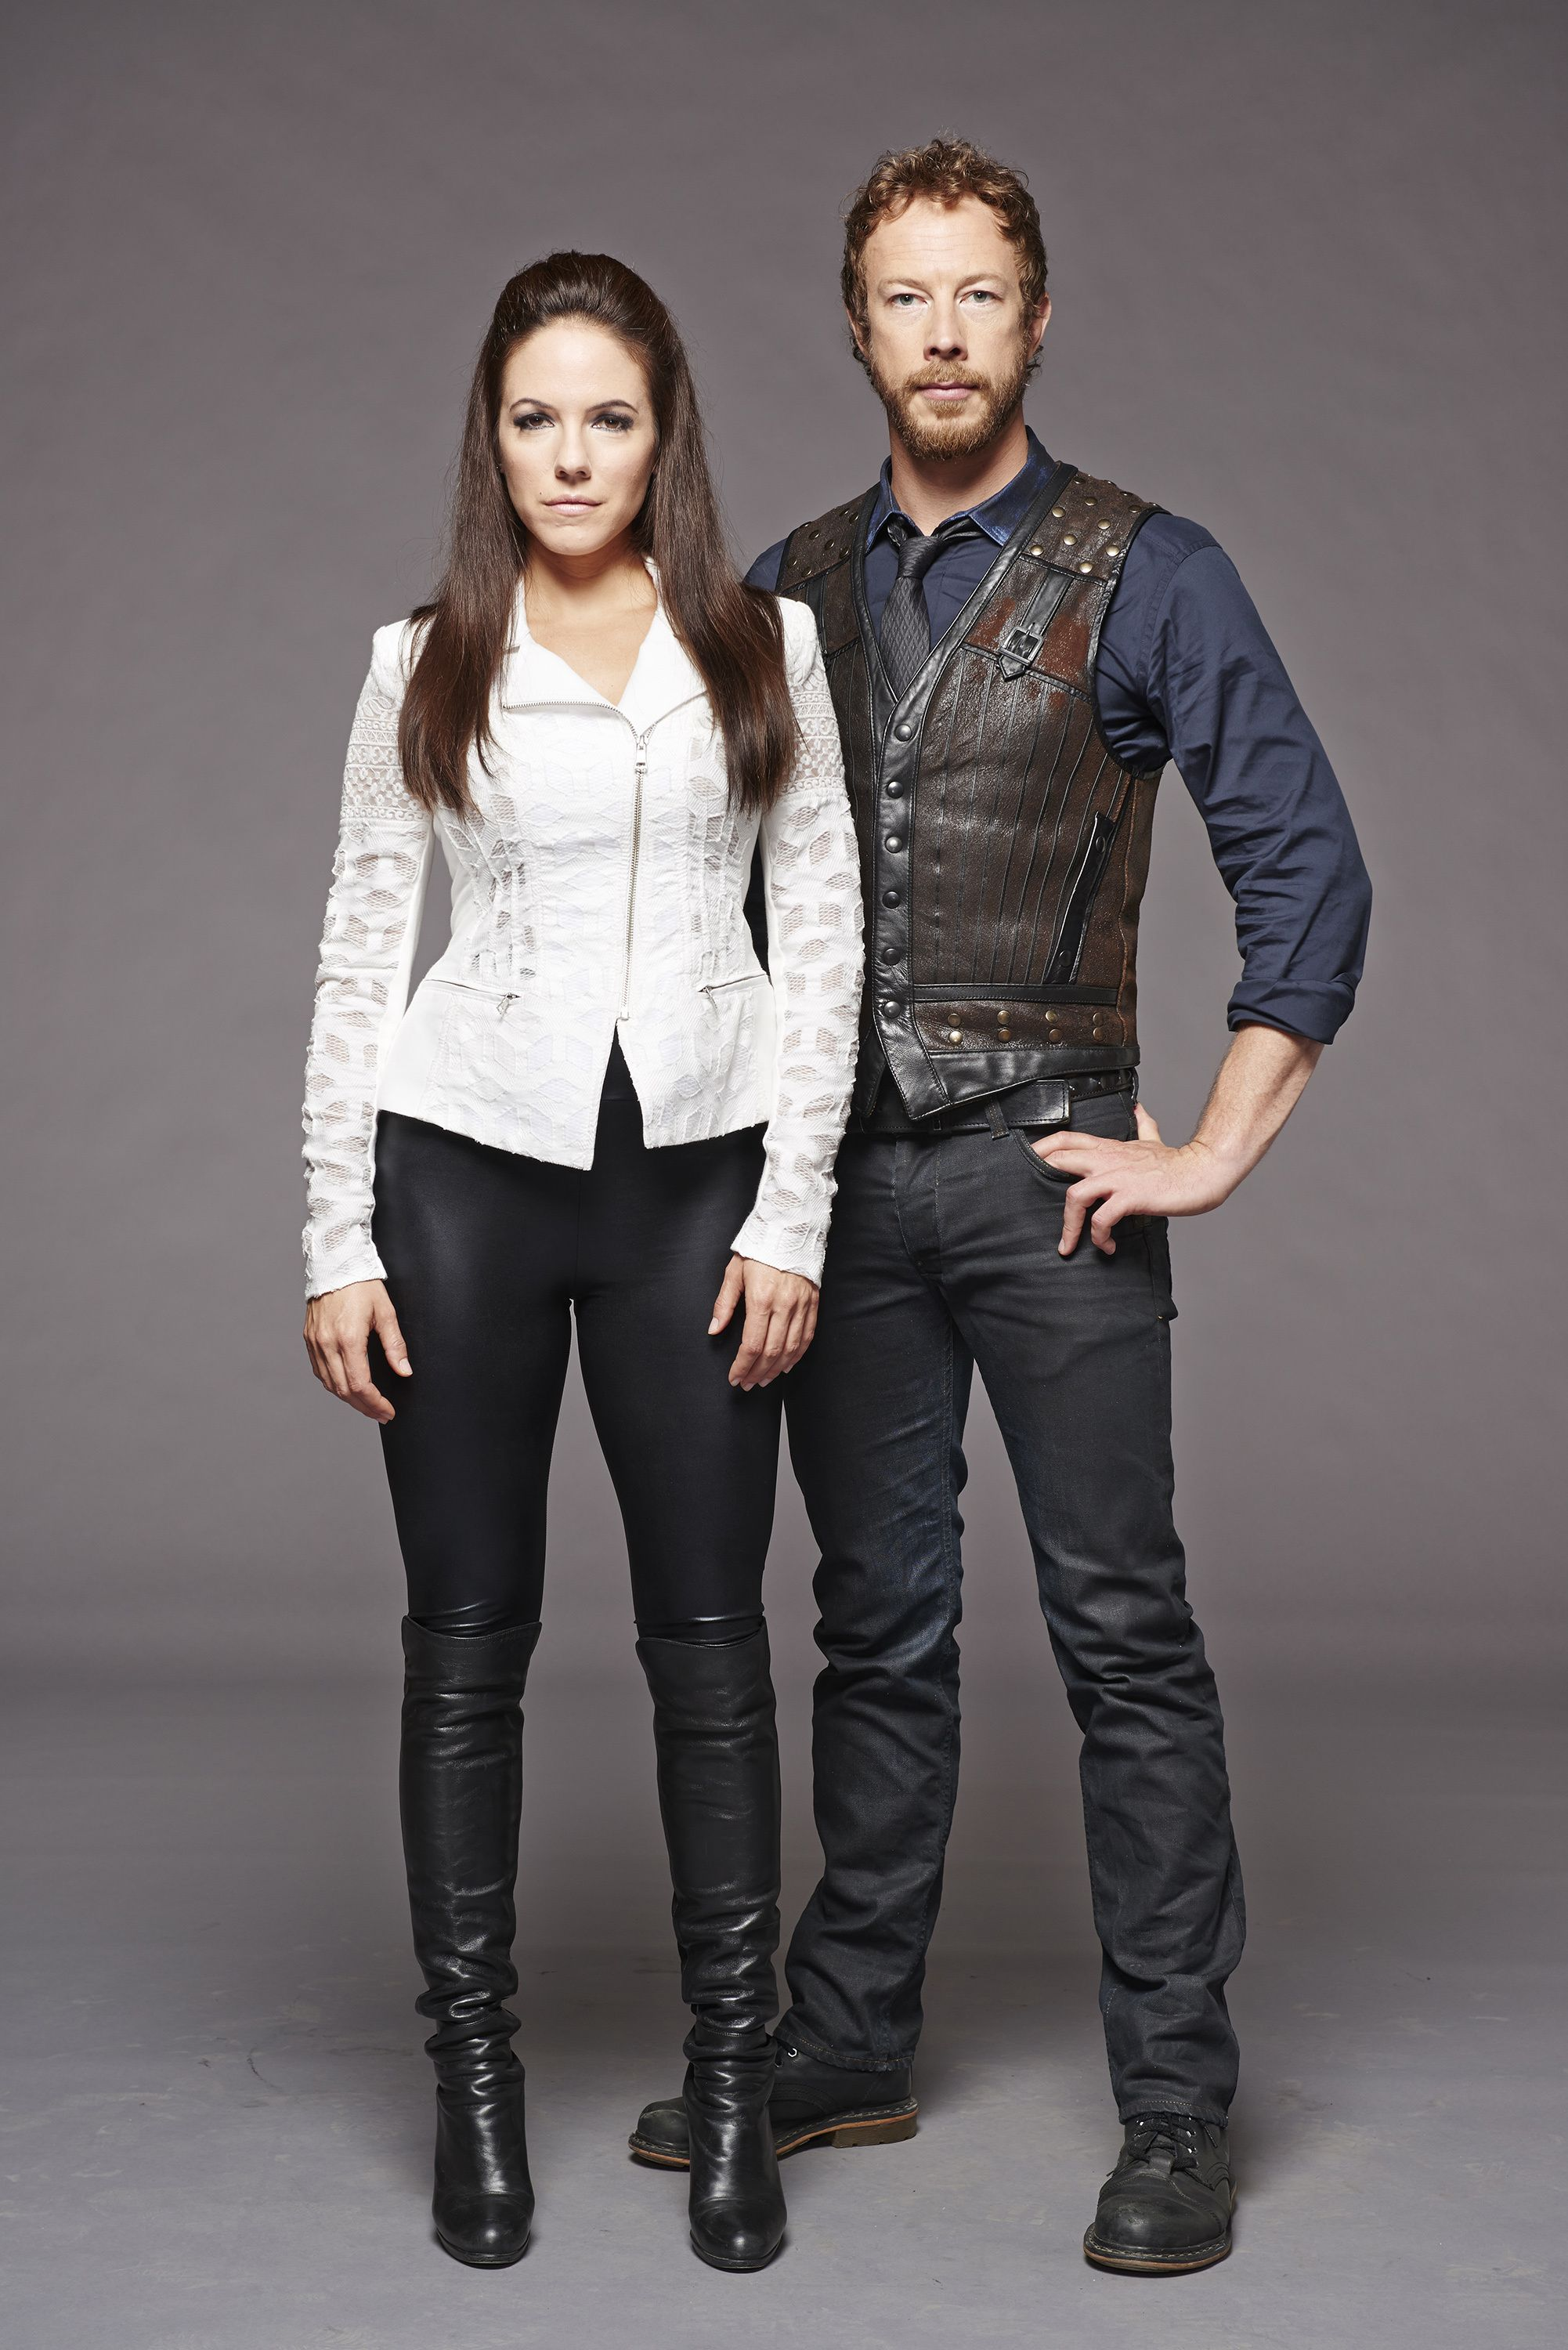 Anna Silk, Kris Holden-Ried | Bo and Dyson | Lost Girl ...Lost Girl Dyson S Partner